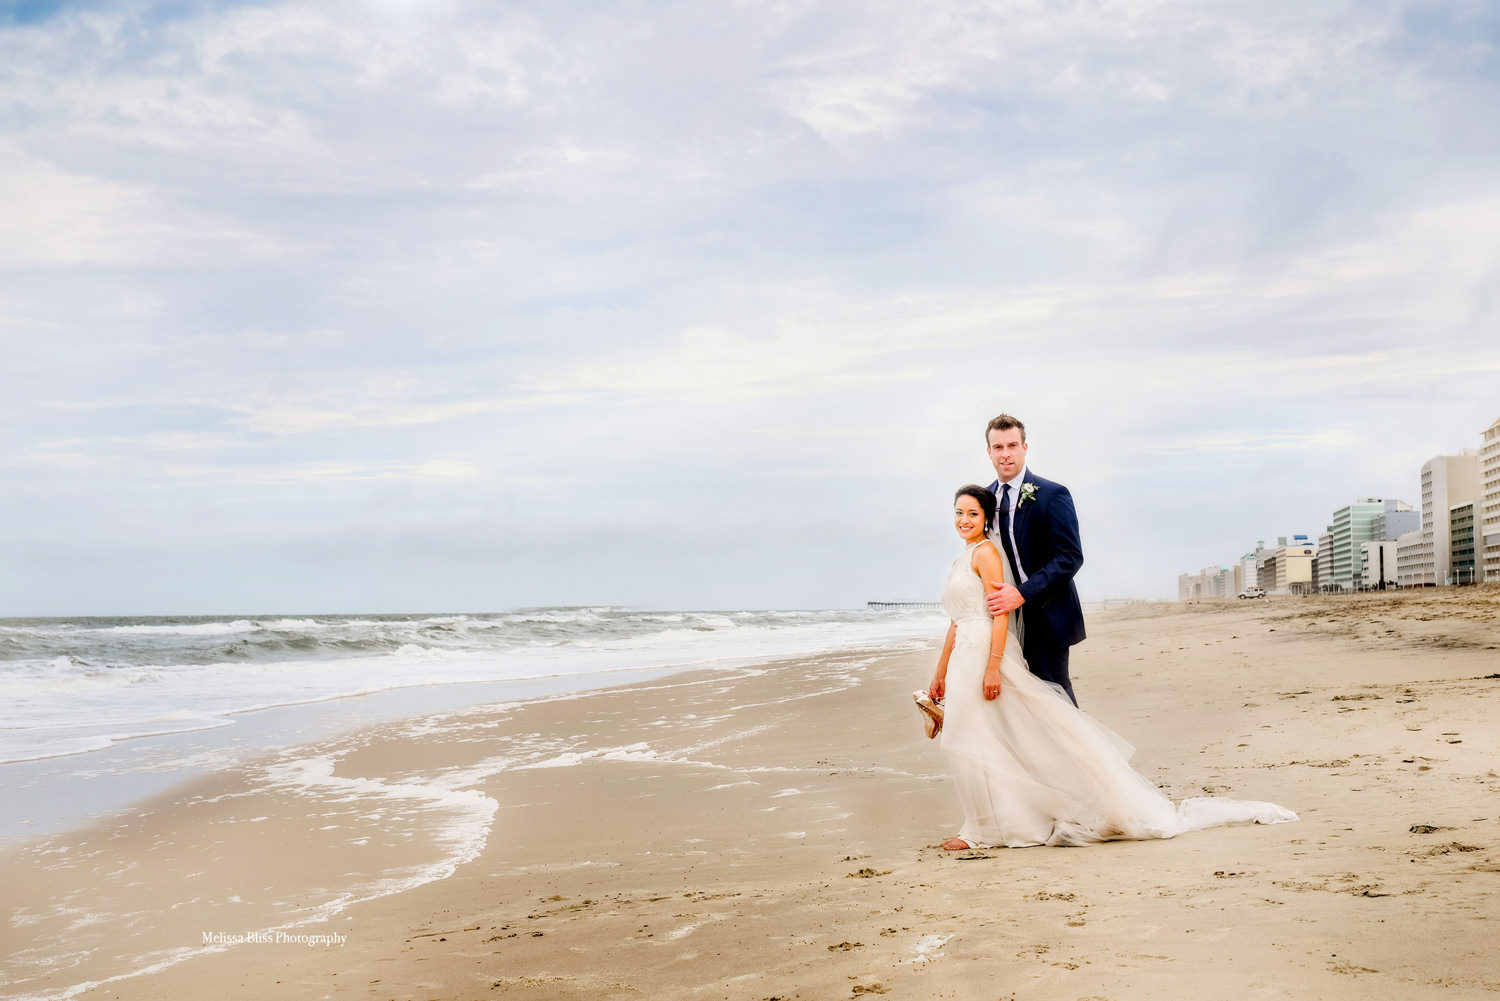 bride-and-groom-beach-portraits-melissa-bliss-photography-VA-wedding-photographer.jpg